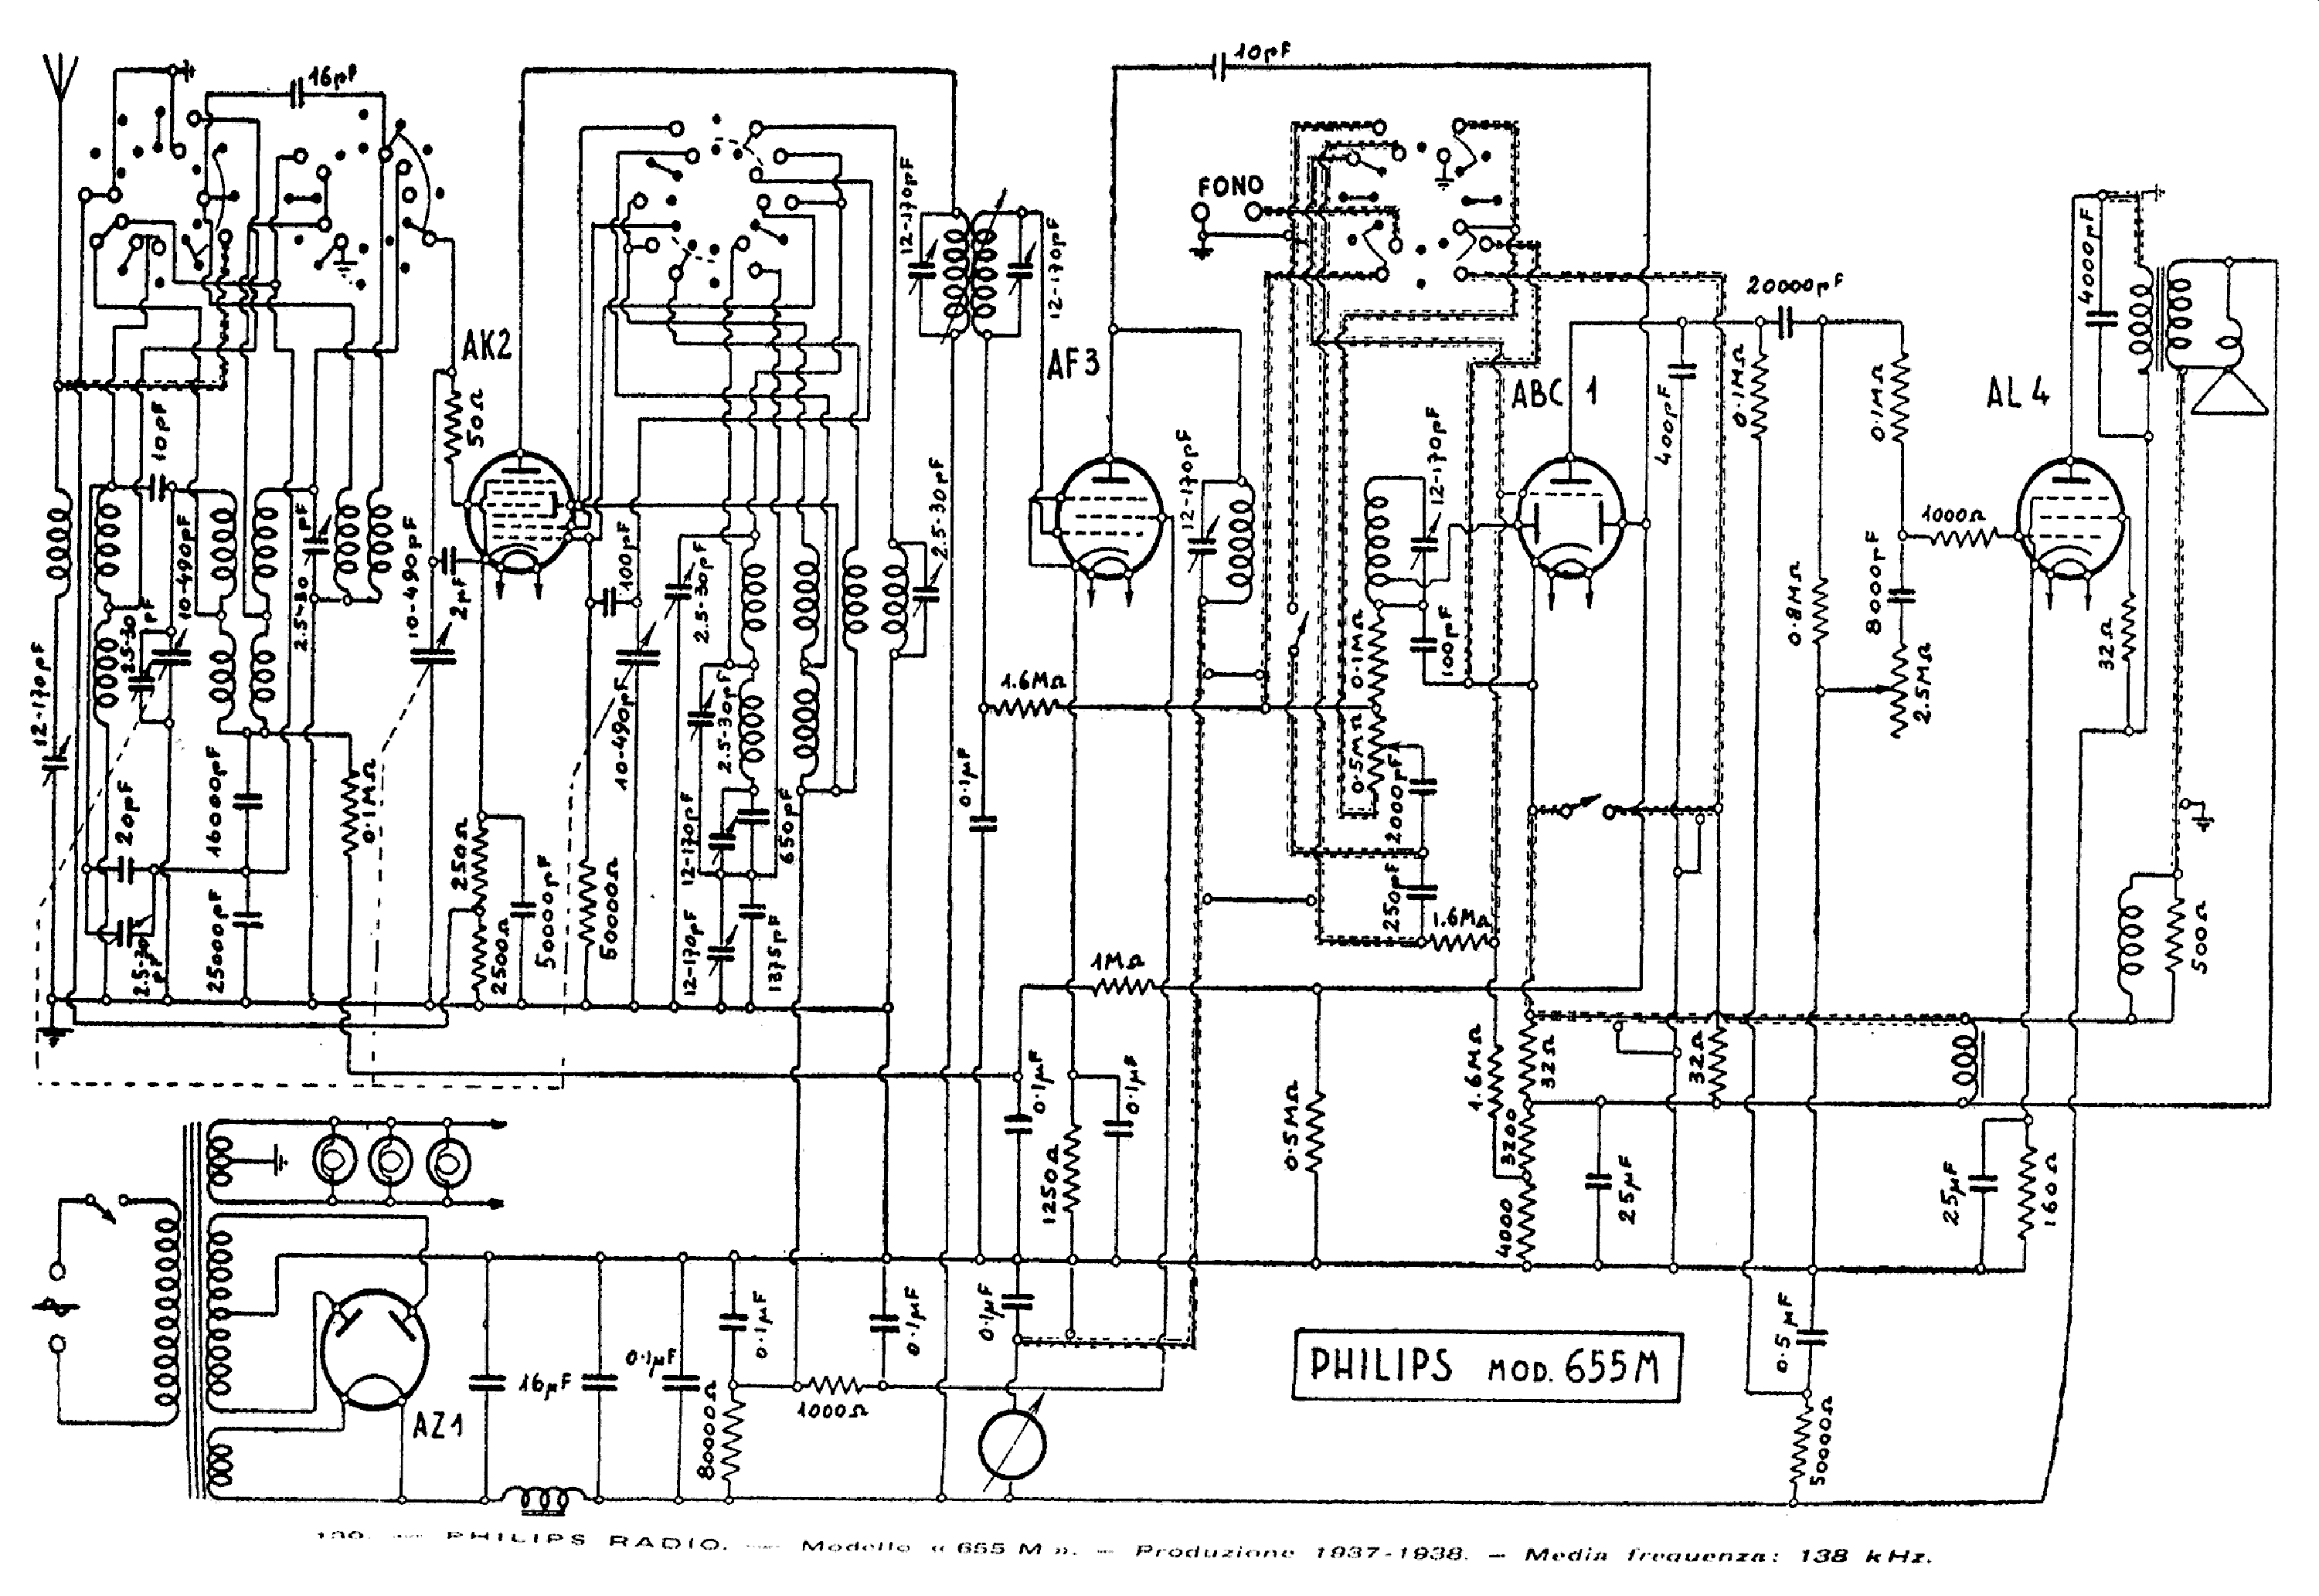 PHILIPS 655M AC RADIO 1937 SCH Service Manual download